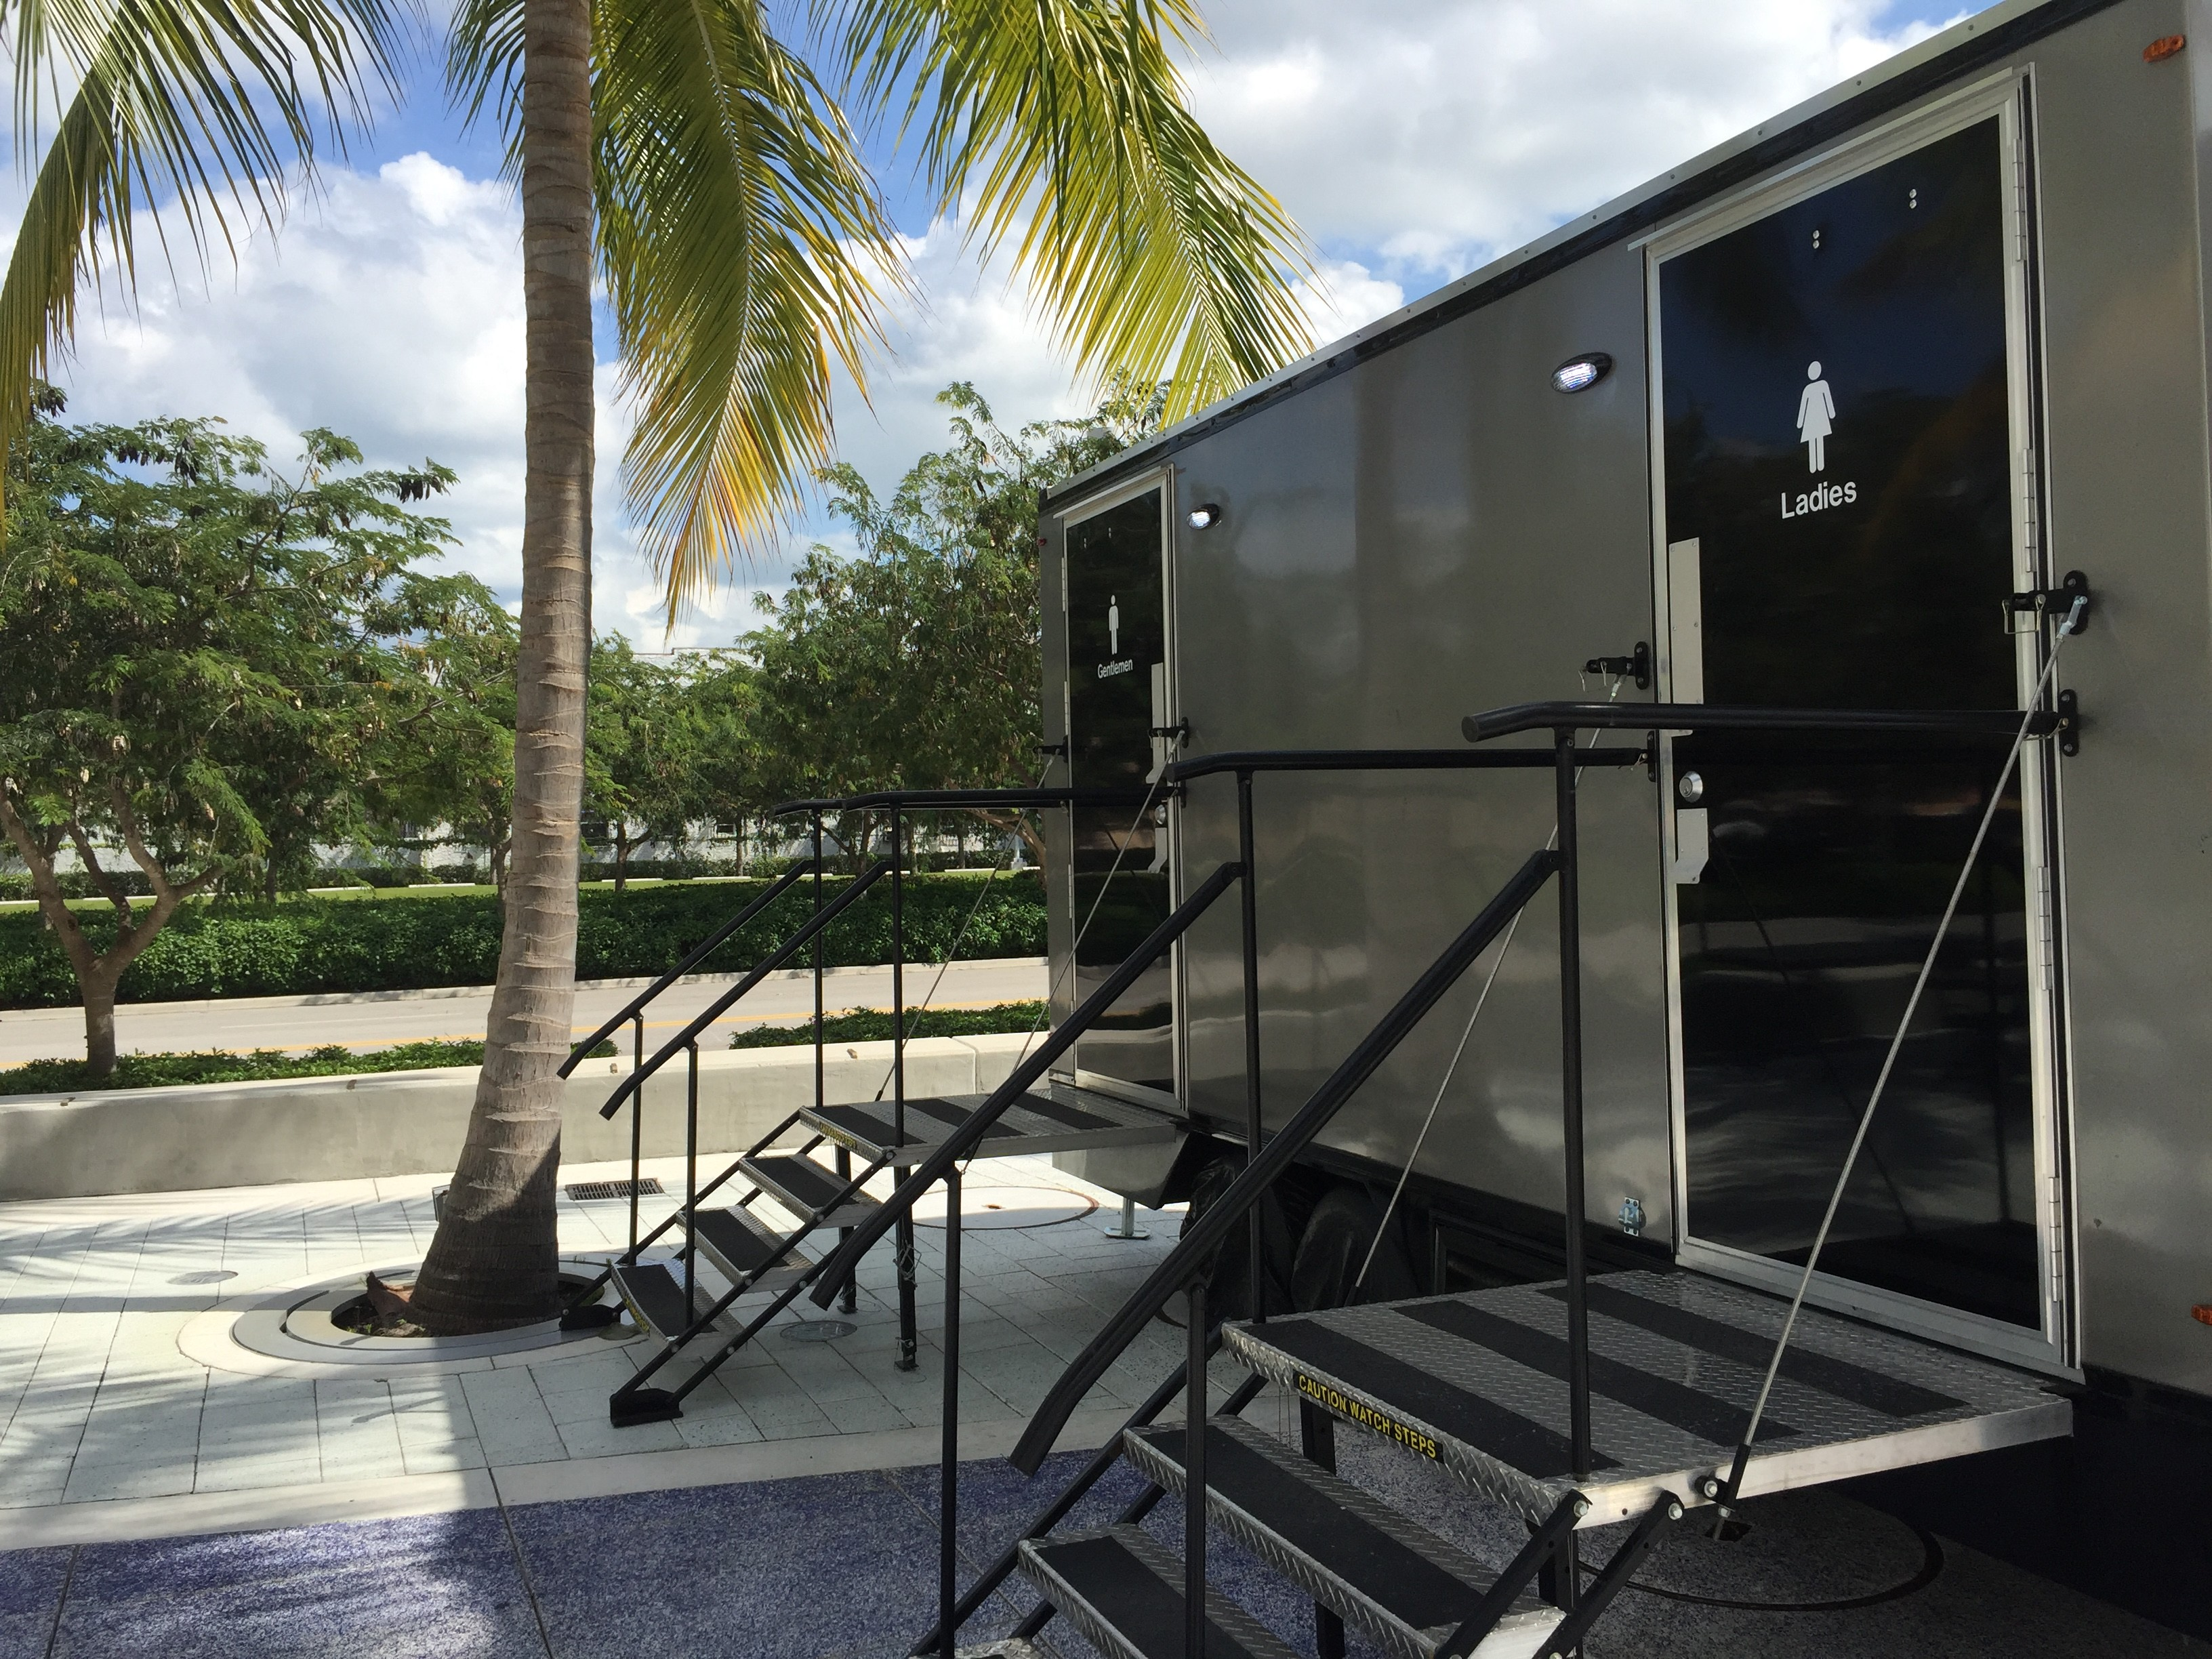 YML Portable Restrooms Rental Services – Florida Events